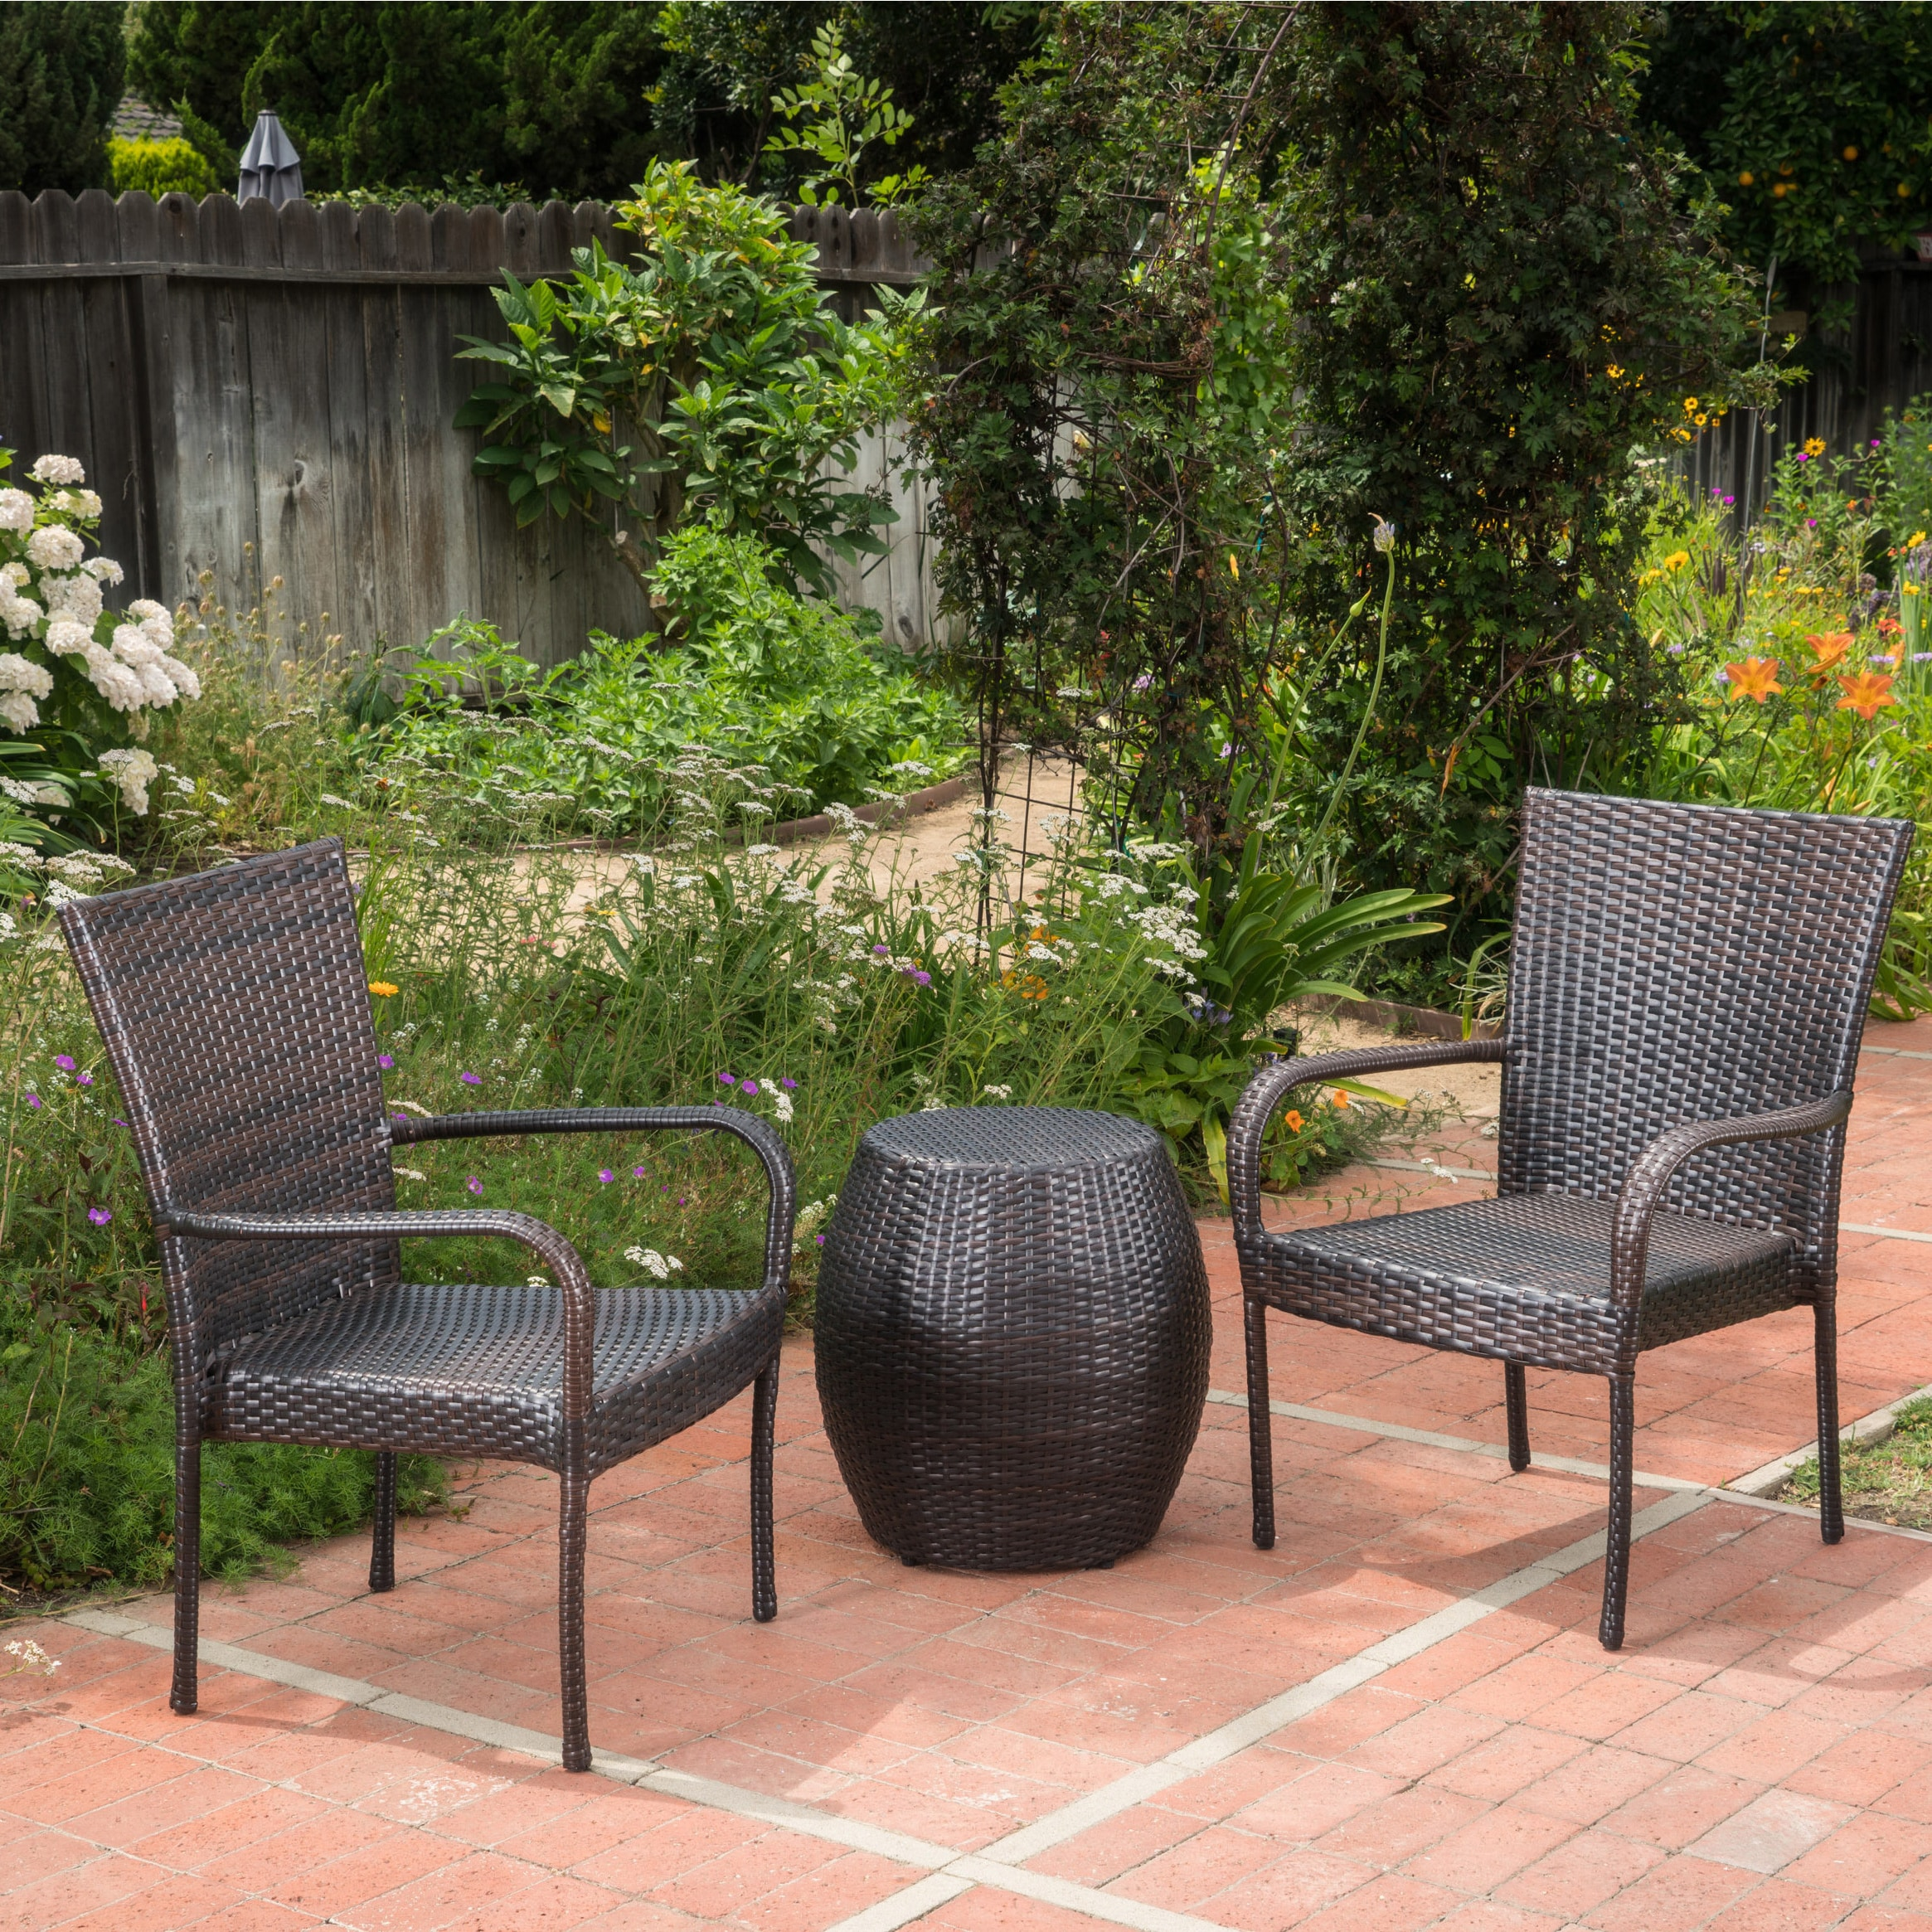 Christopher Knight Home Orleans Outdoor 3-Piece Wicker Chat Set by